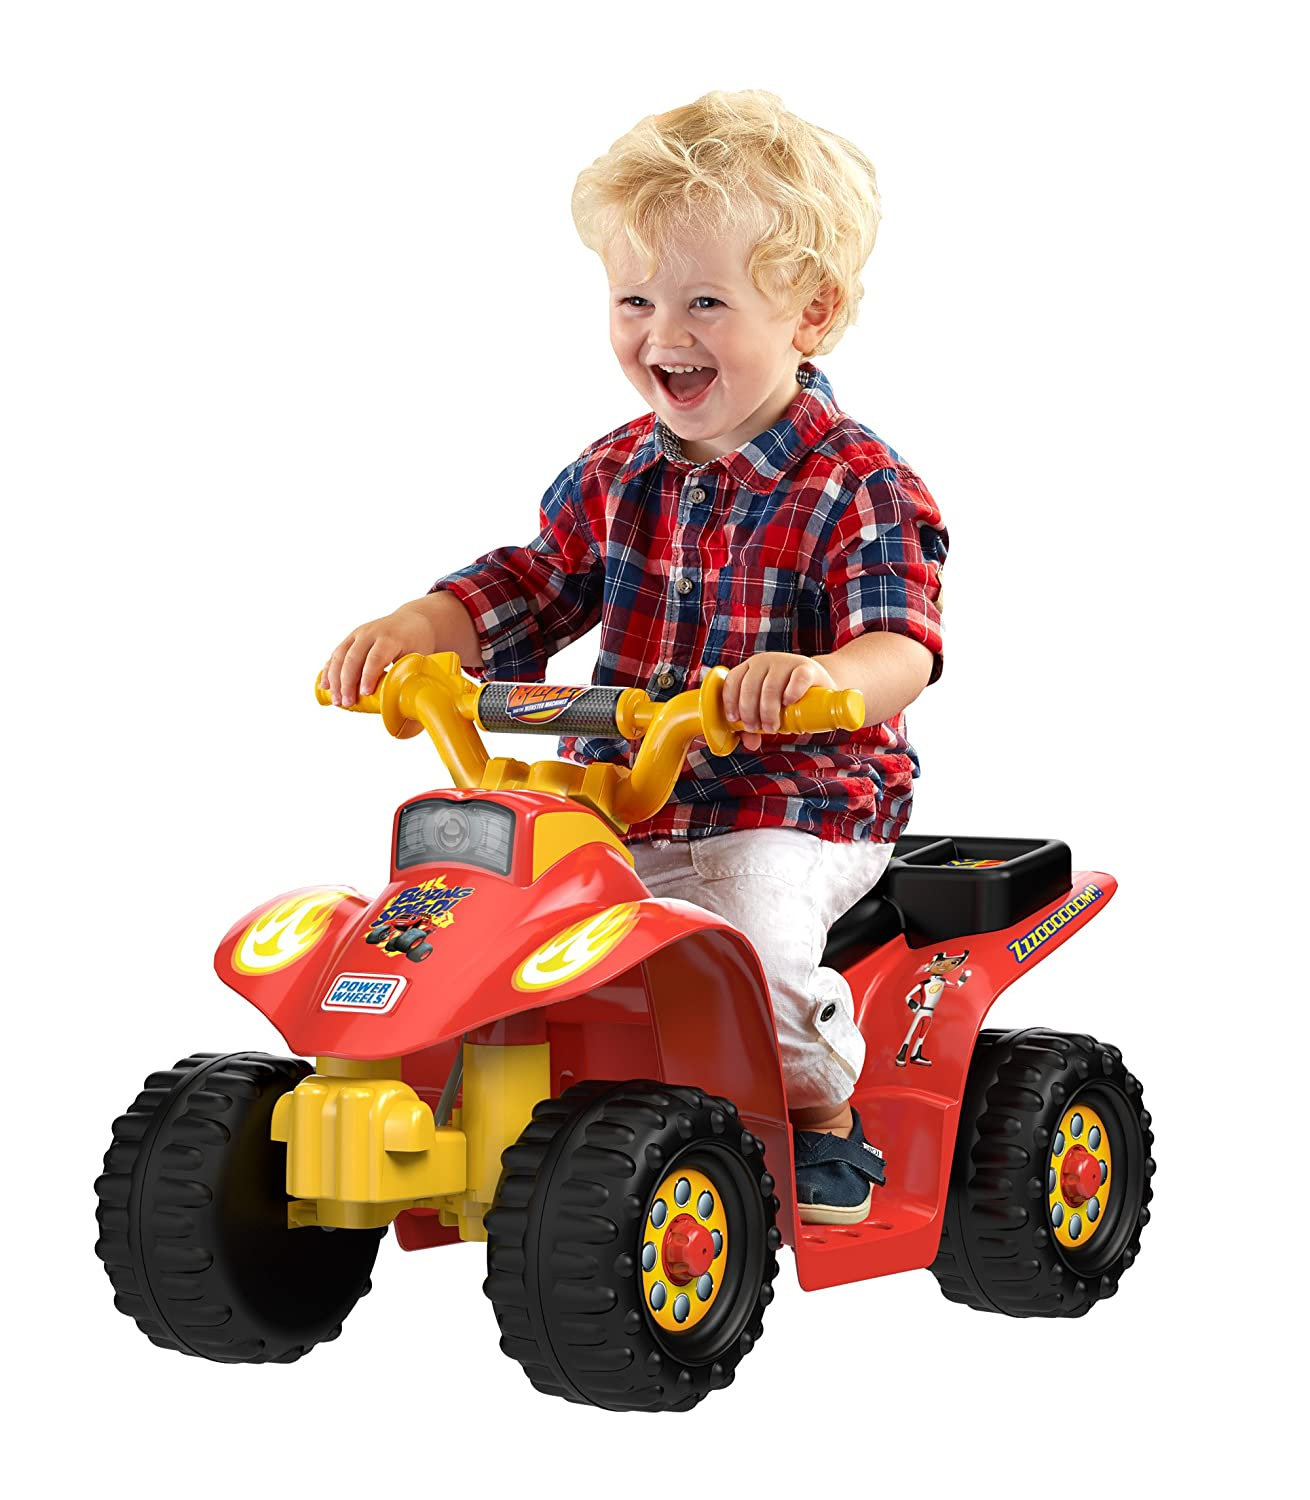 Blaze Power Wheels 6 Volt Ride Toys For Toddlers